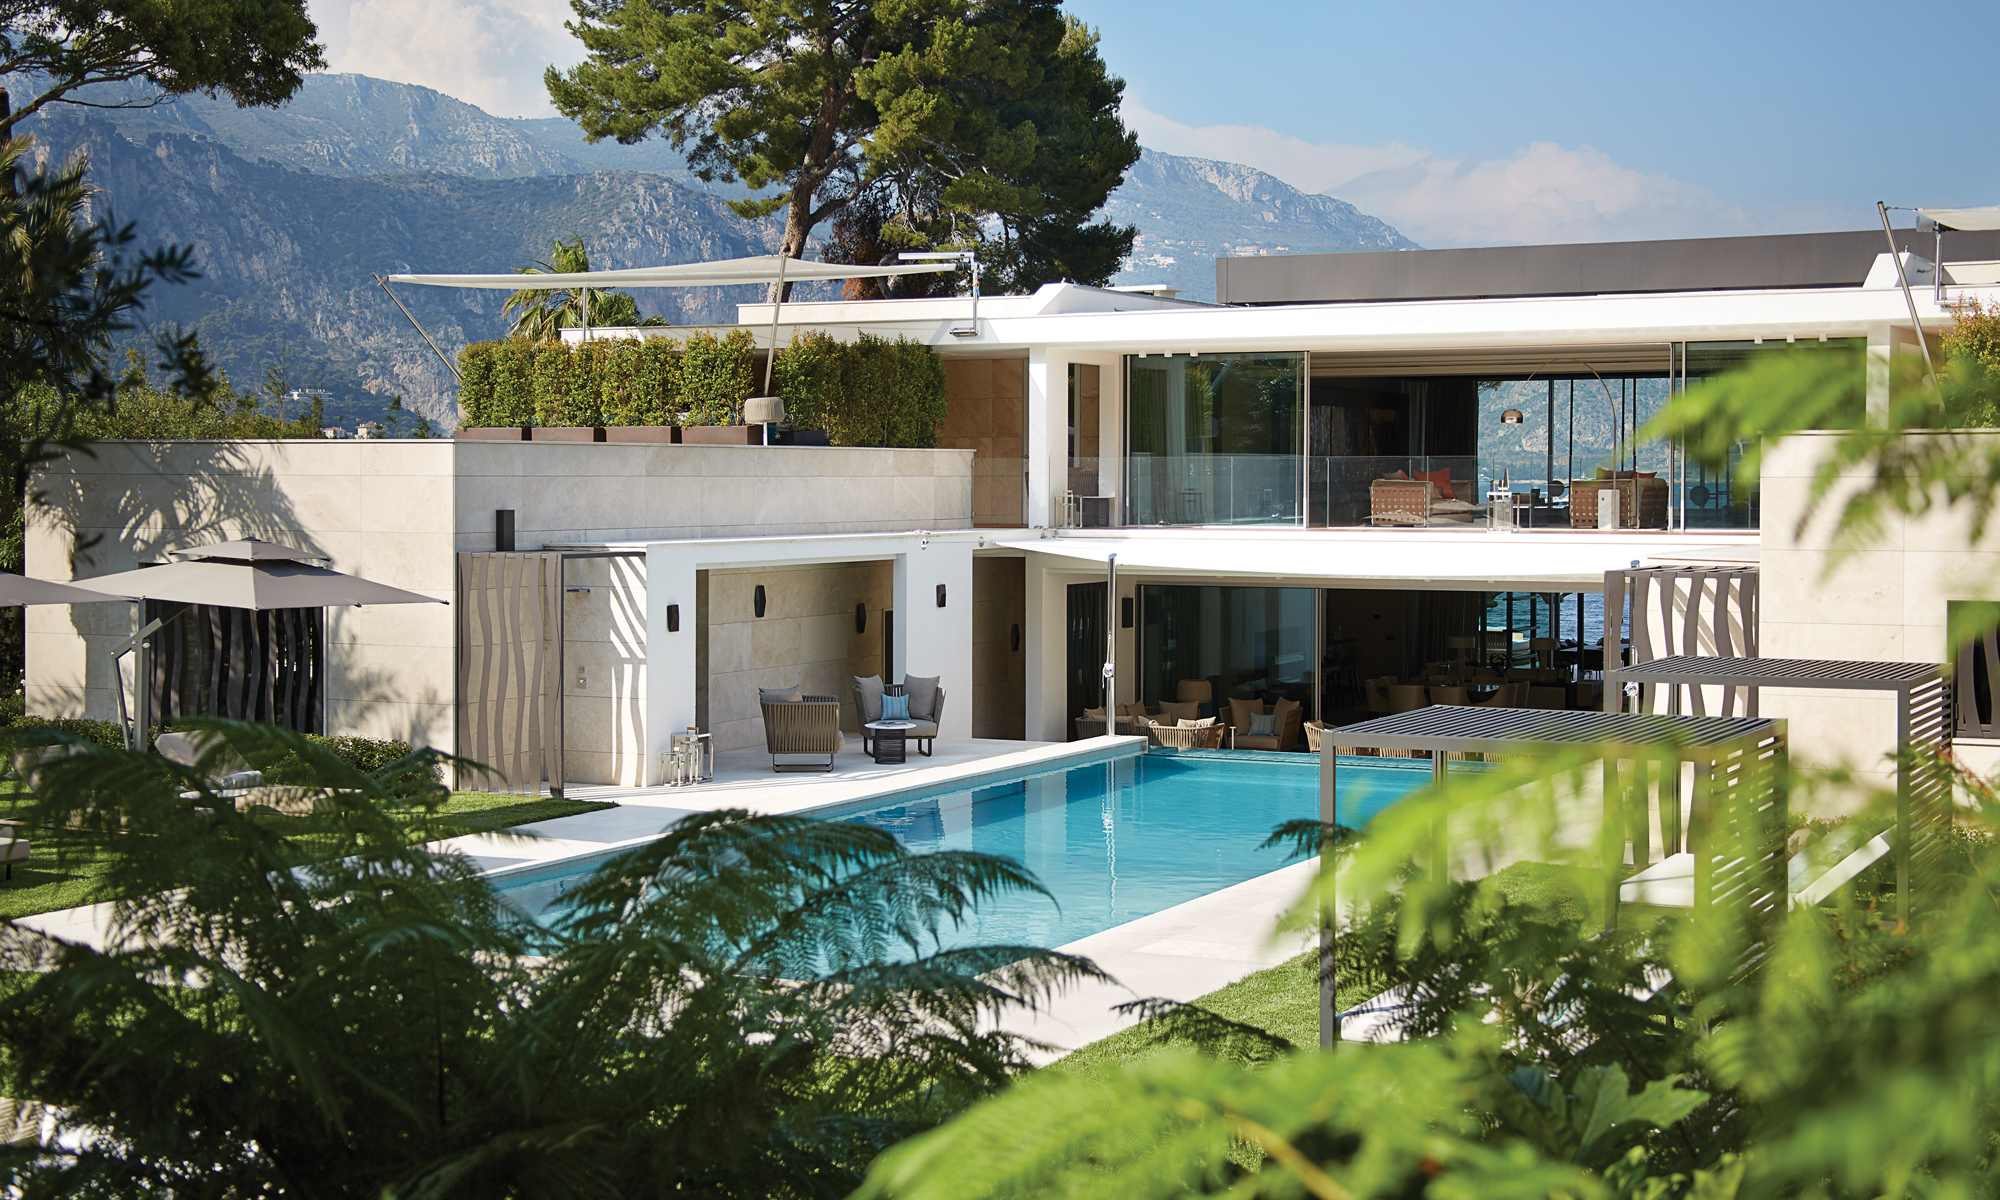 Villa L'Empyrée is set out over more than 4,200 sq m of manicured gardens, featuring two outdoor heated swimming pools.